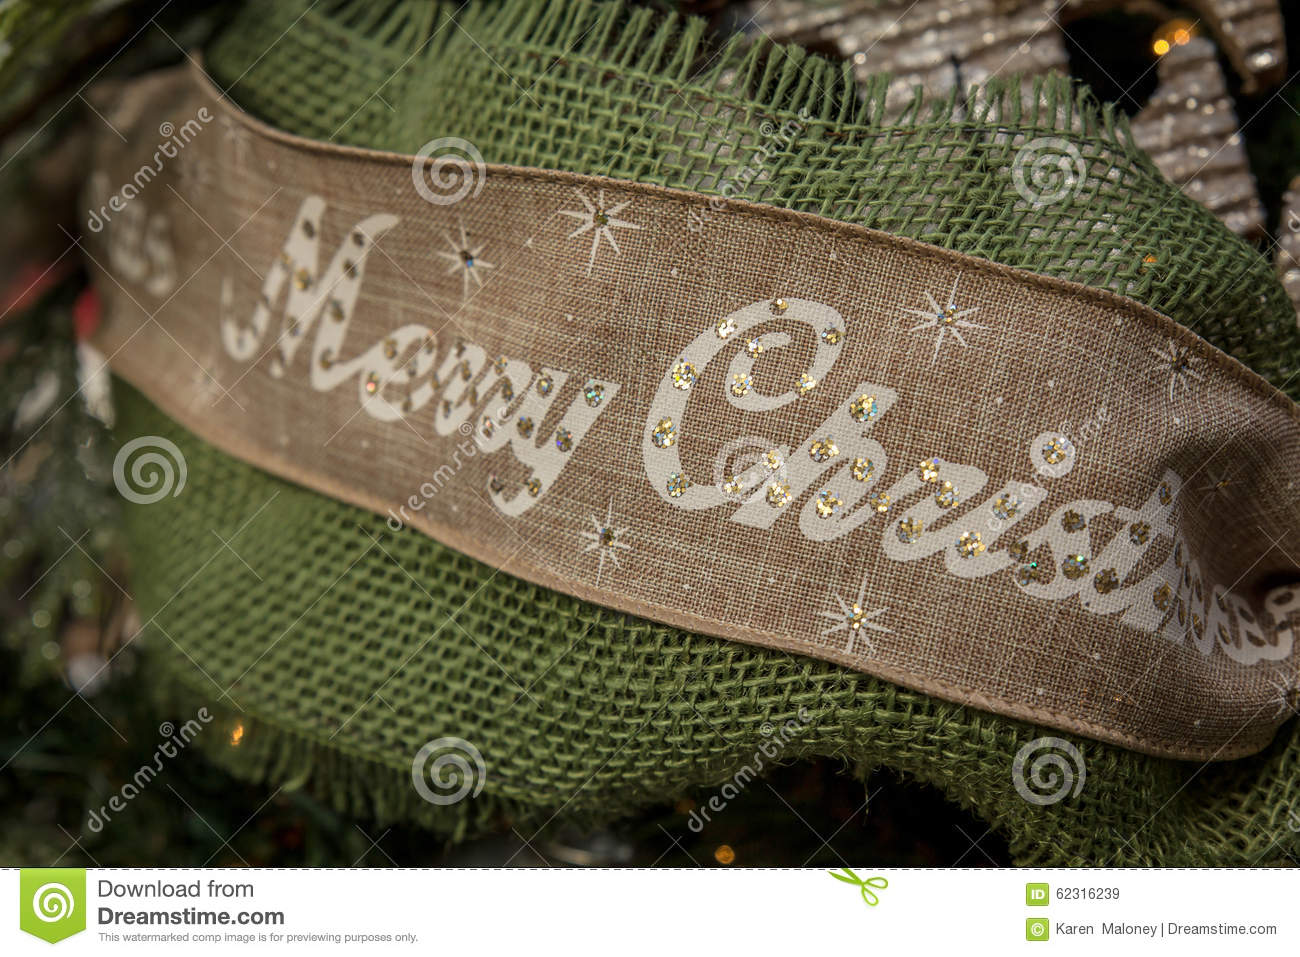 download merry christmas ribbon stock image image of holidays 62316239 - Burlap Christmas Ribbon